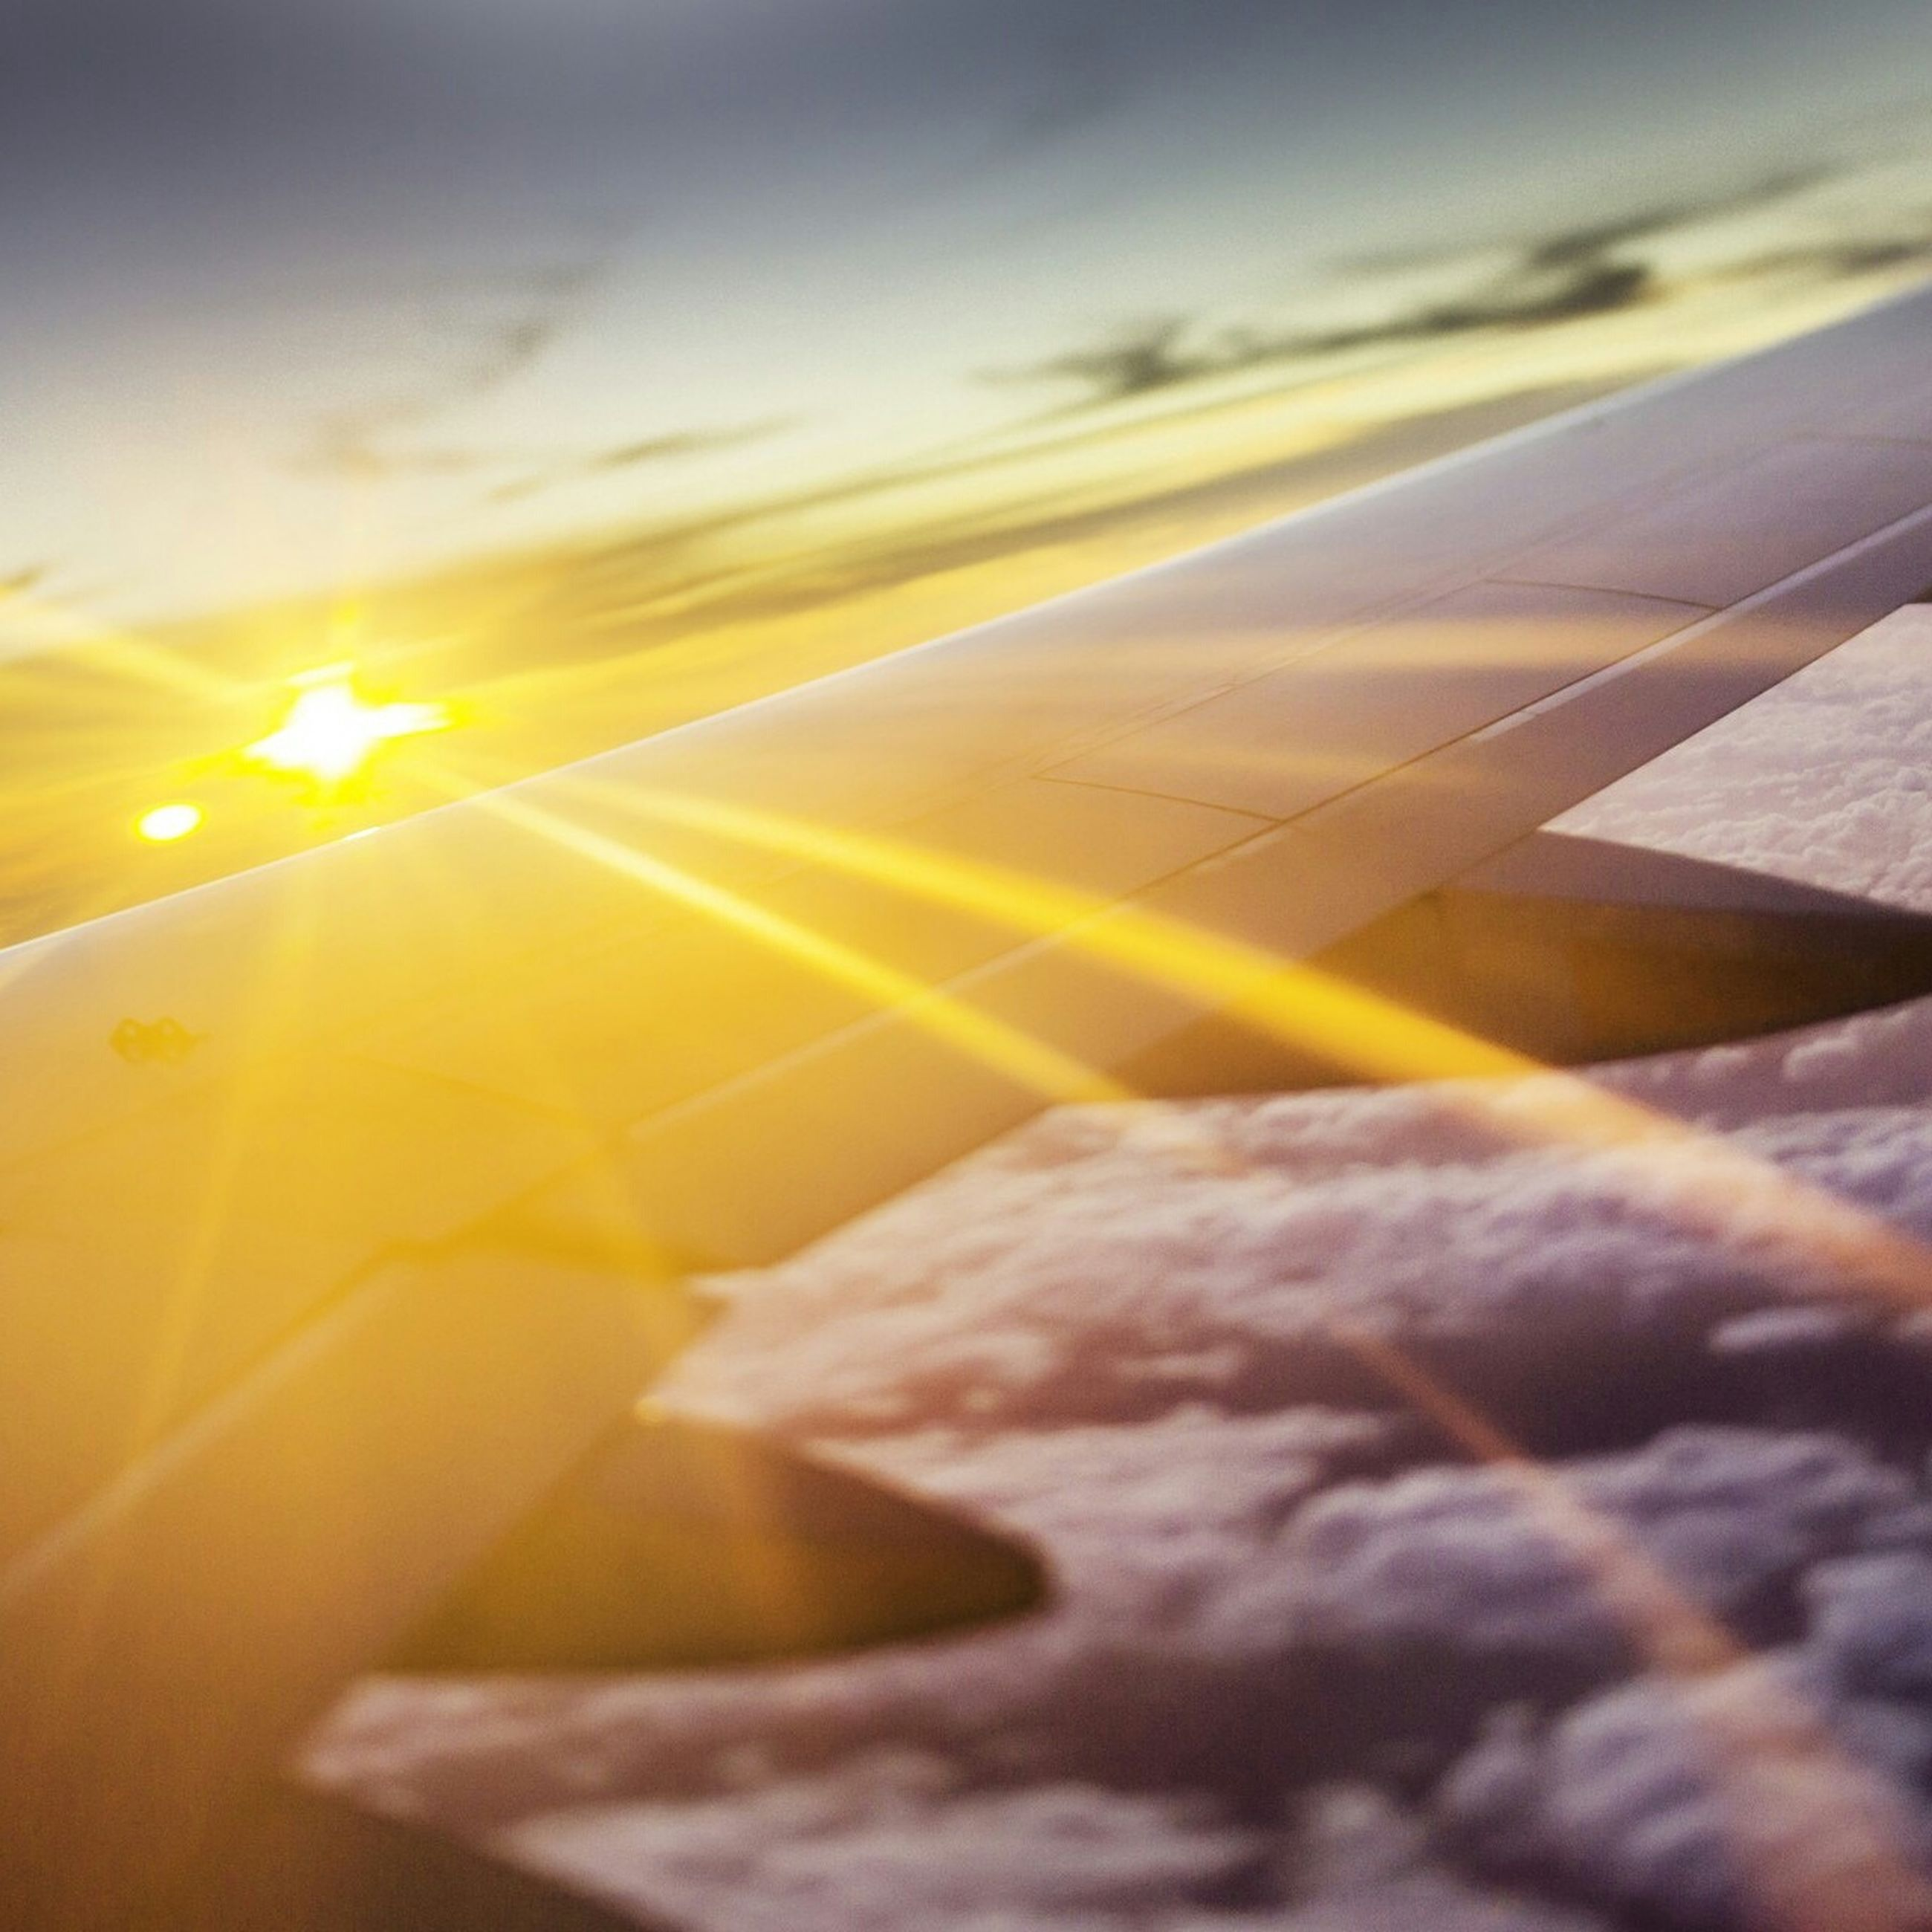 yellow, transportation, sunset, close-up, no people, sky, part of, selective focus, cropped, sunlight, high angle view, outdoors, nature, orange color, cloud - sky, day, tilt, lens flare, airplane